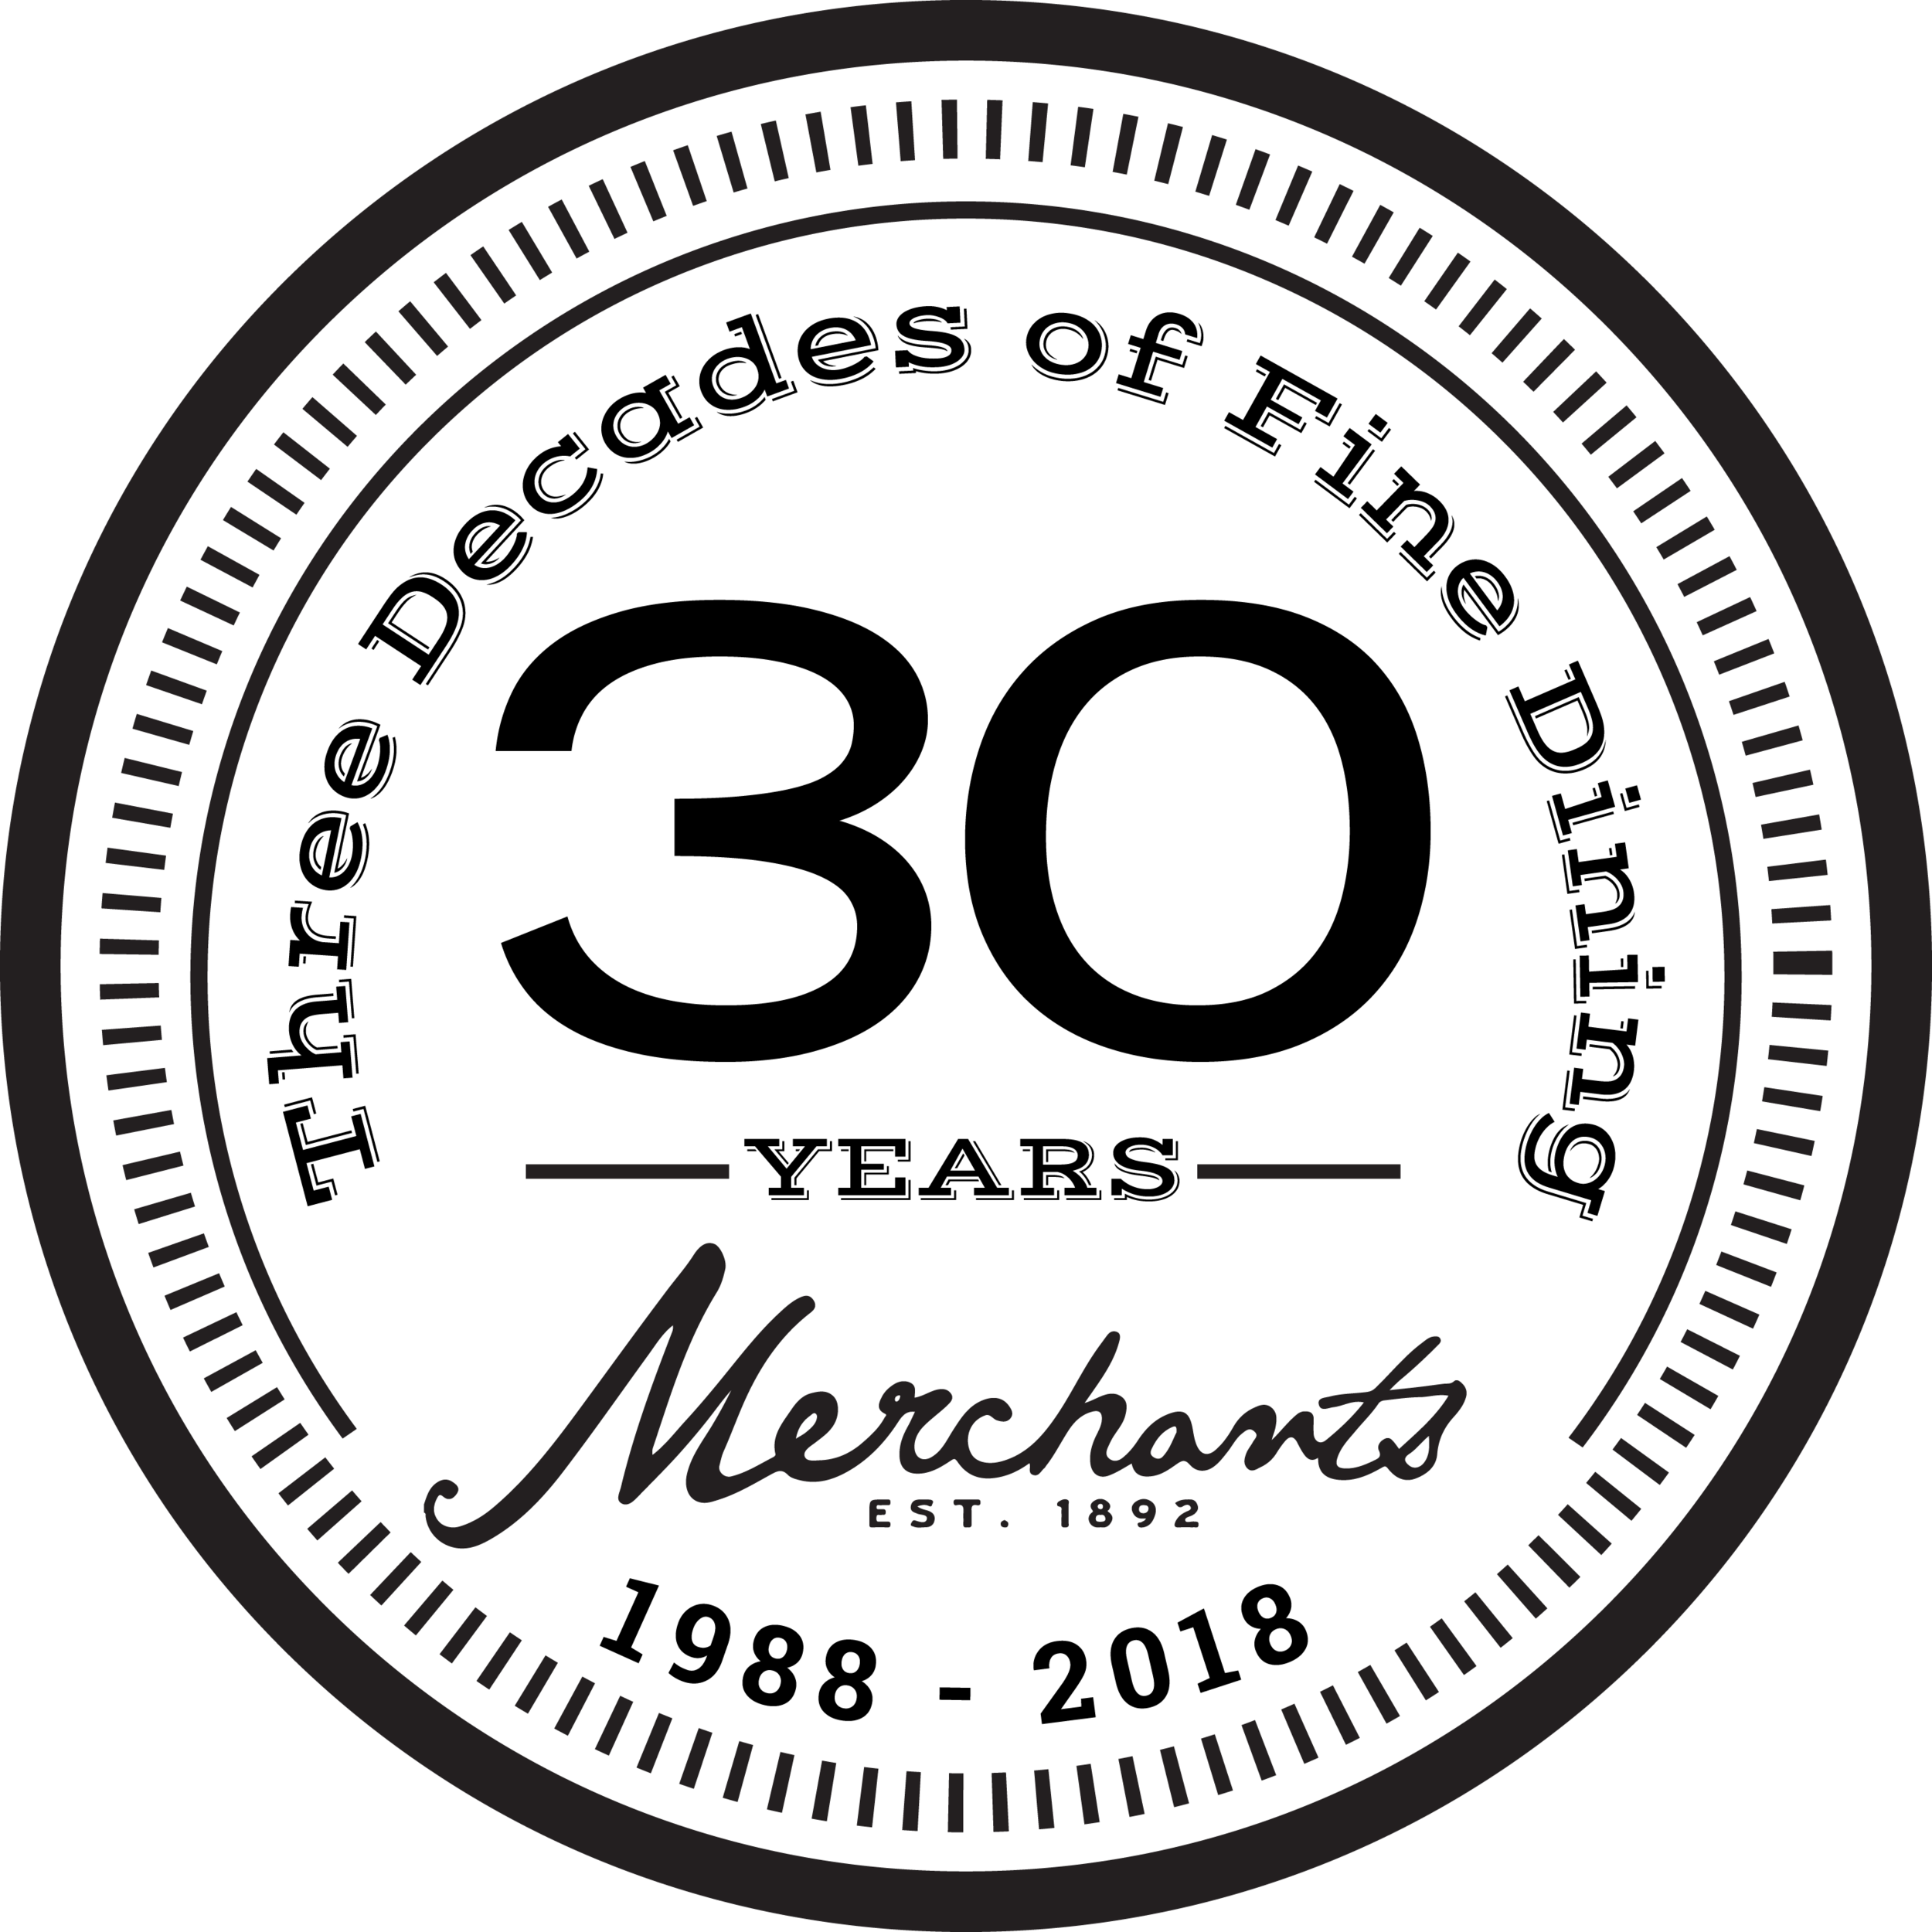 Merchants_30-Year_Seal.png